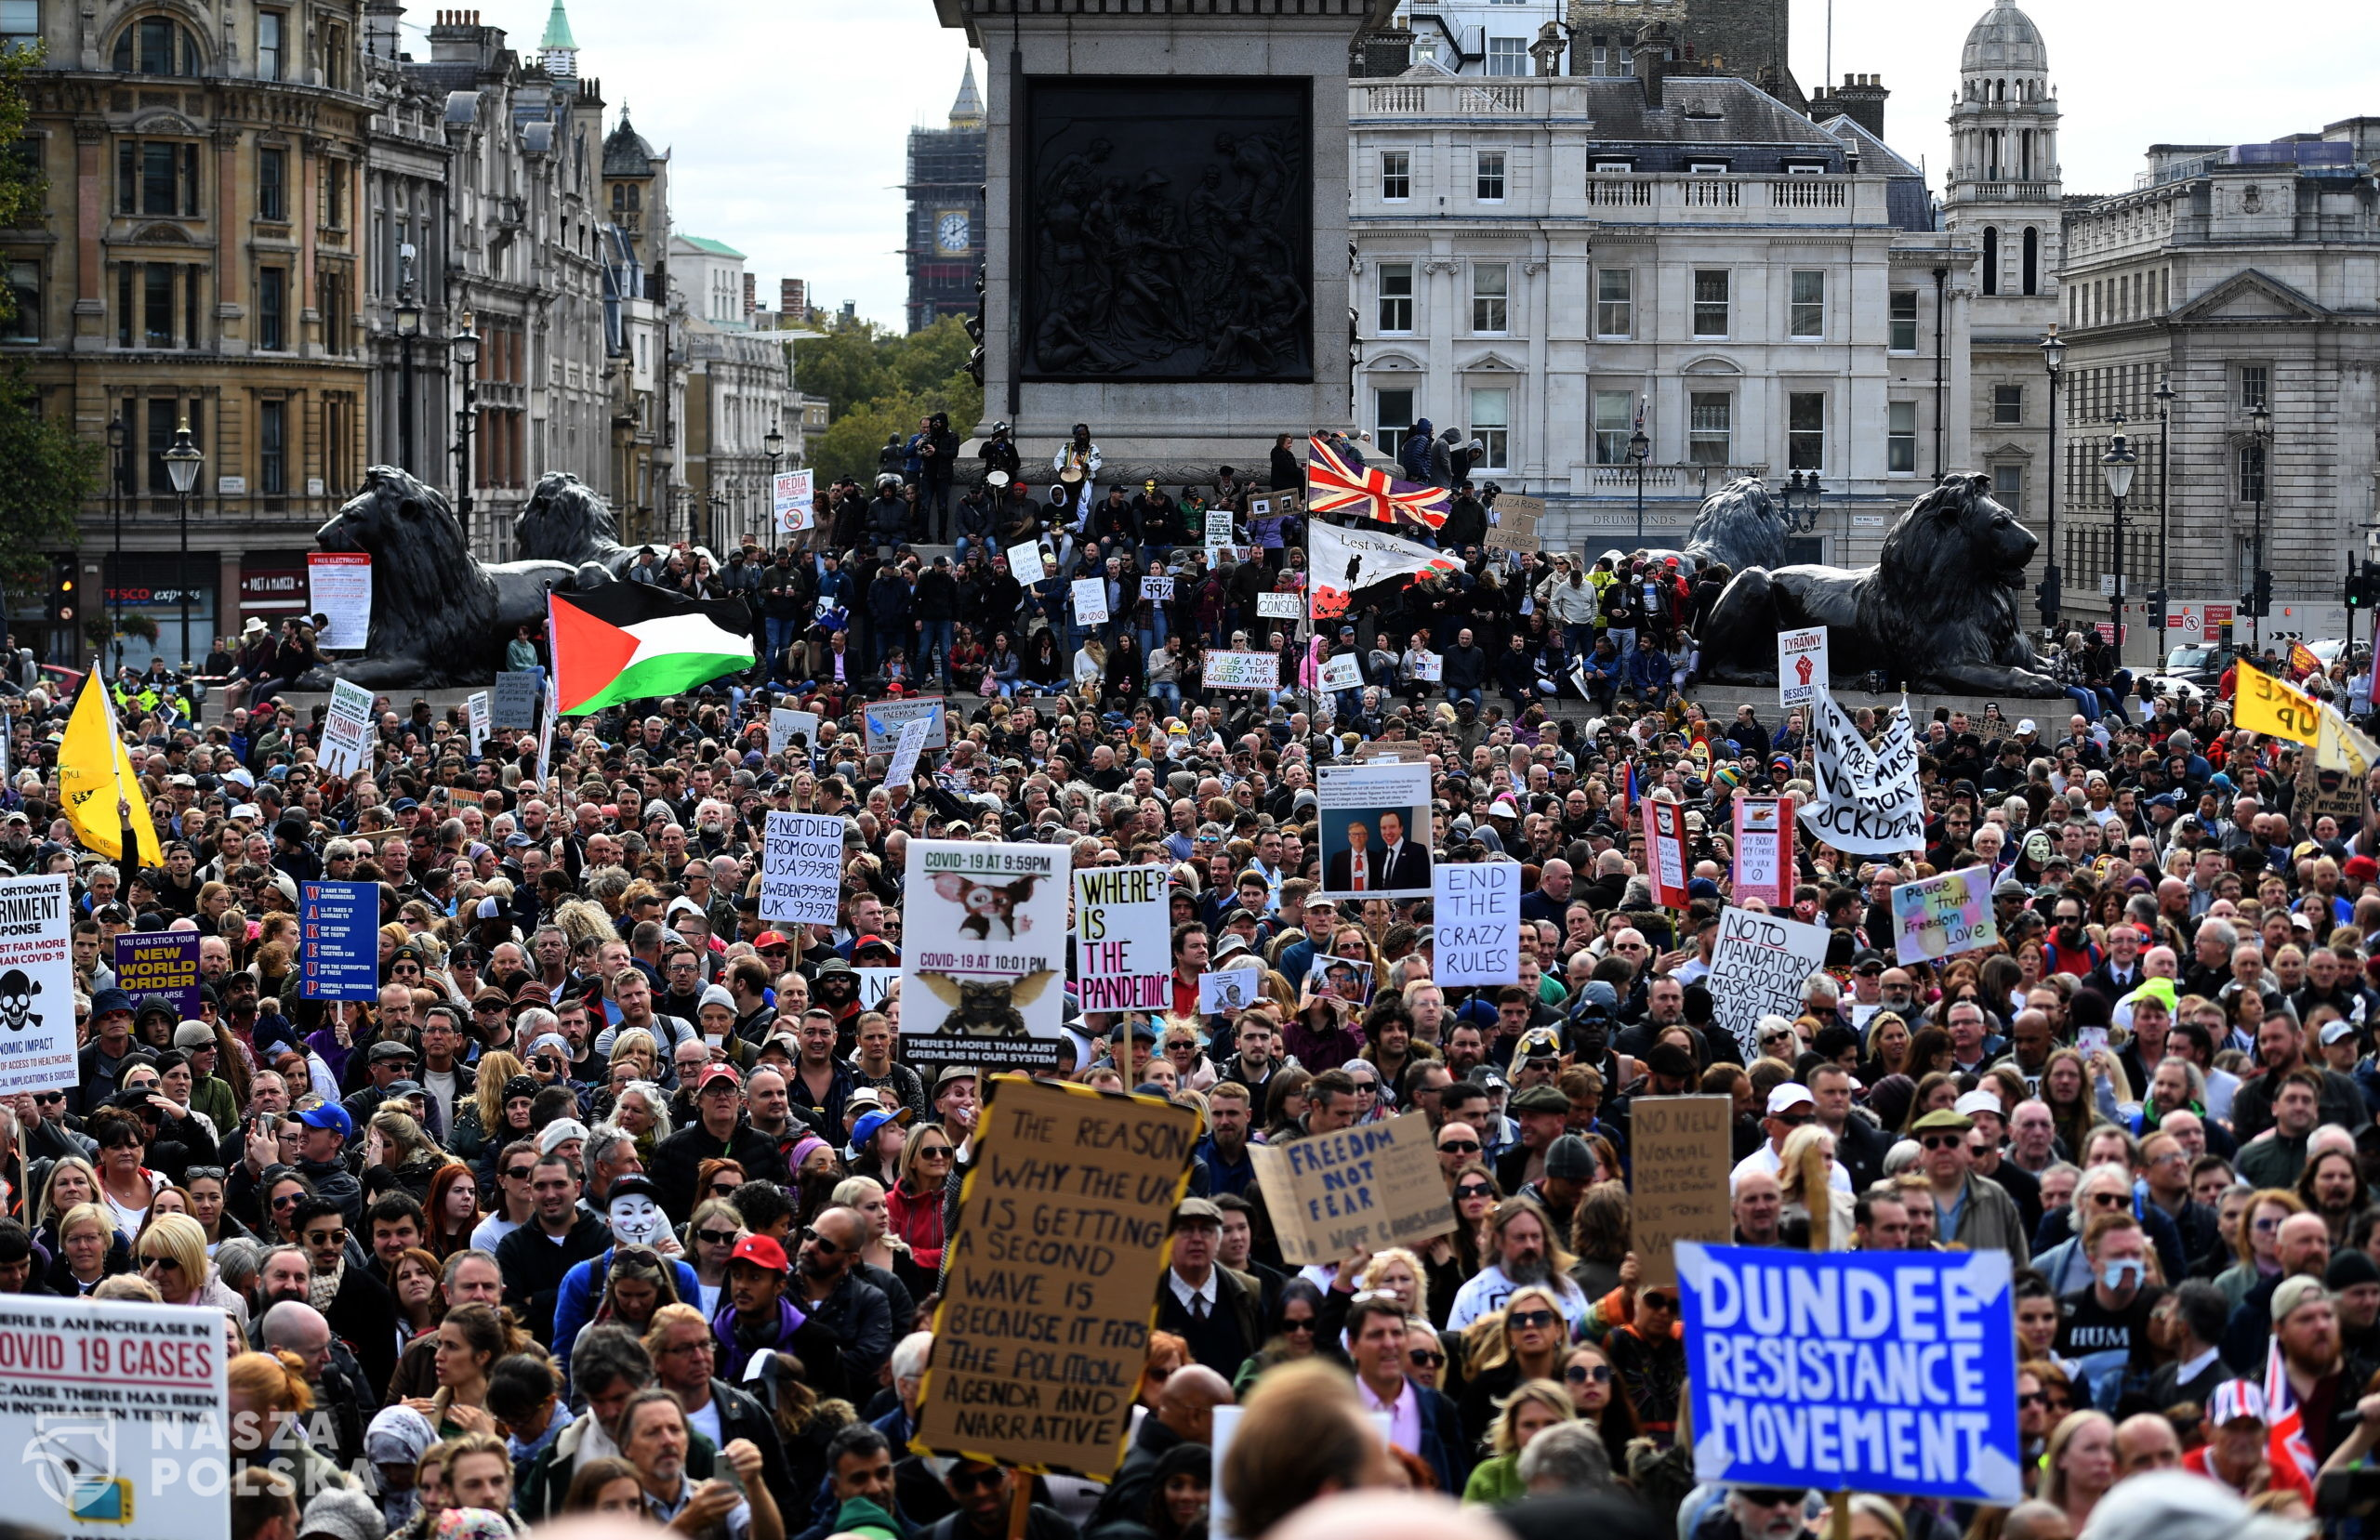 epa08698788 People attend a 'We Do Not Consent' rally at Trafalgar Square in London, Britain, 26 September 2020. Thousends of people gathered at a demonstration to protest against new coronavirus restrictions.  EPA/ANDY RAIN  Dostawca: PAP/EPA.